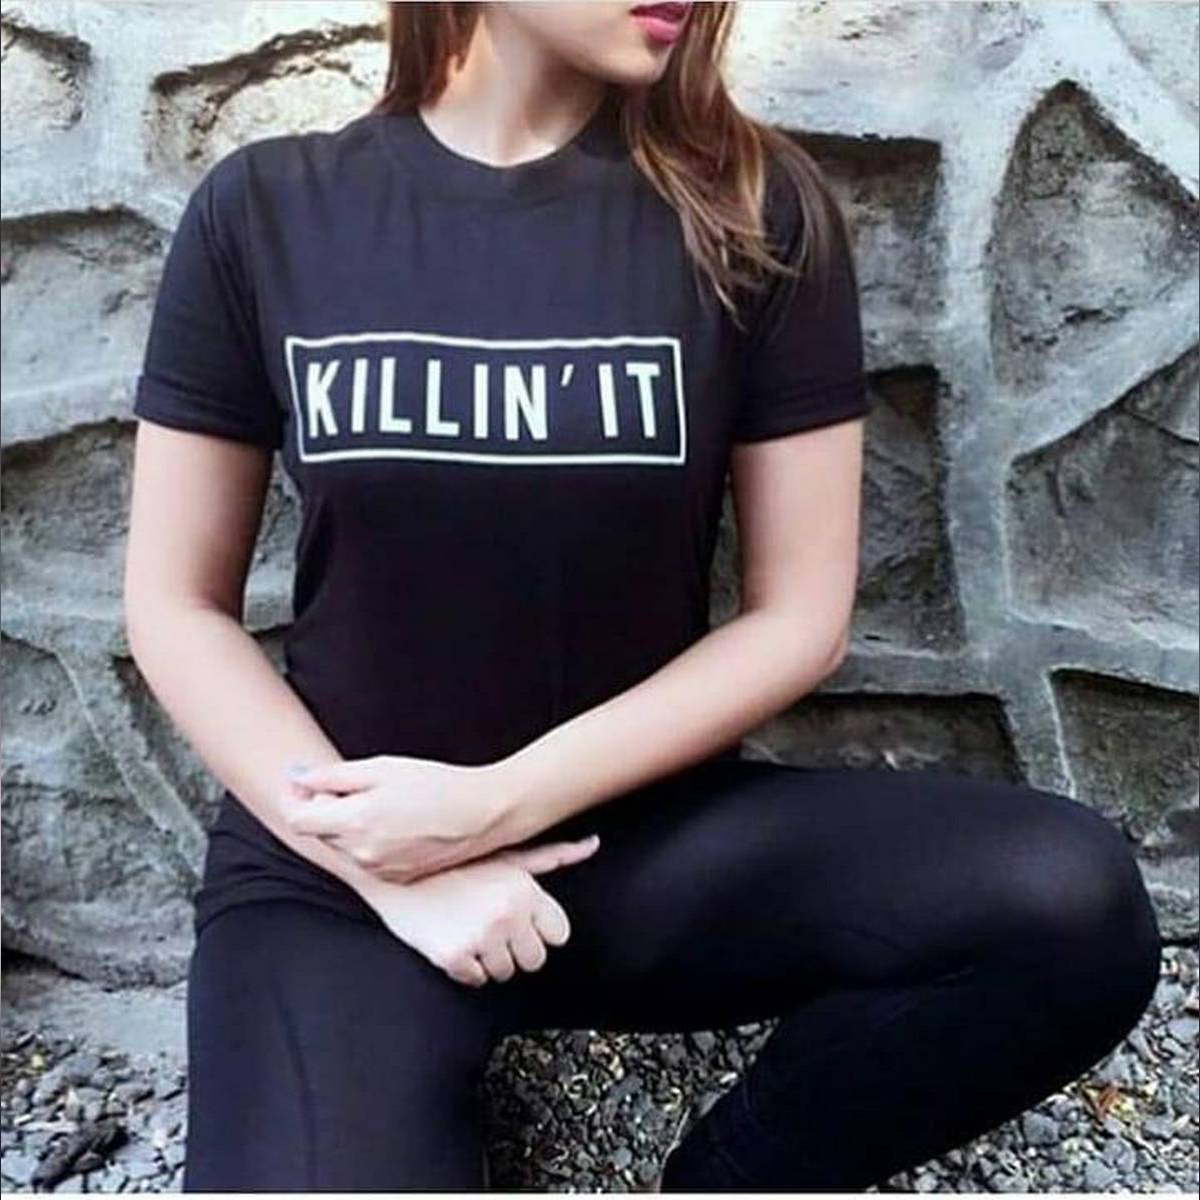 NEW Arrival 2019 Killin It Letter Black T Shirt Women Tshirt Casual Funny T Shirt For Lady Girl Top Tops